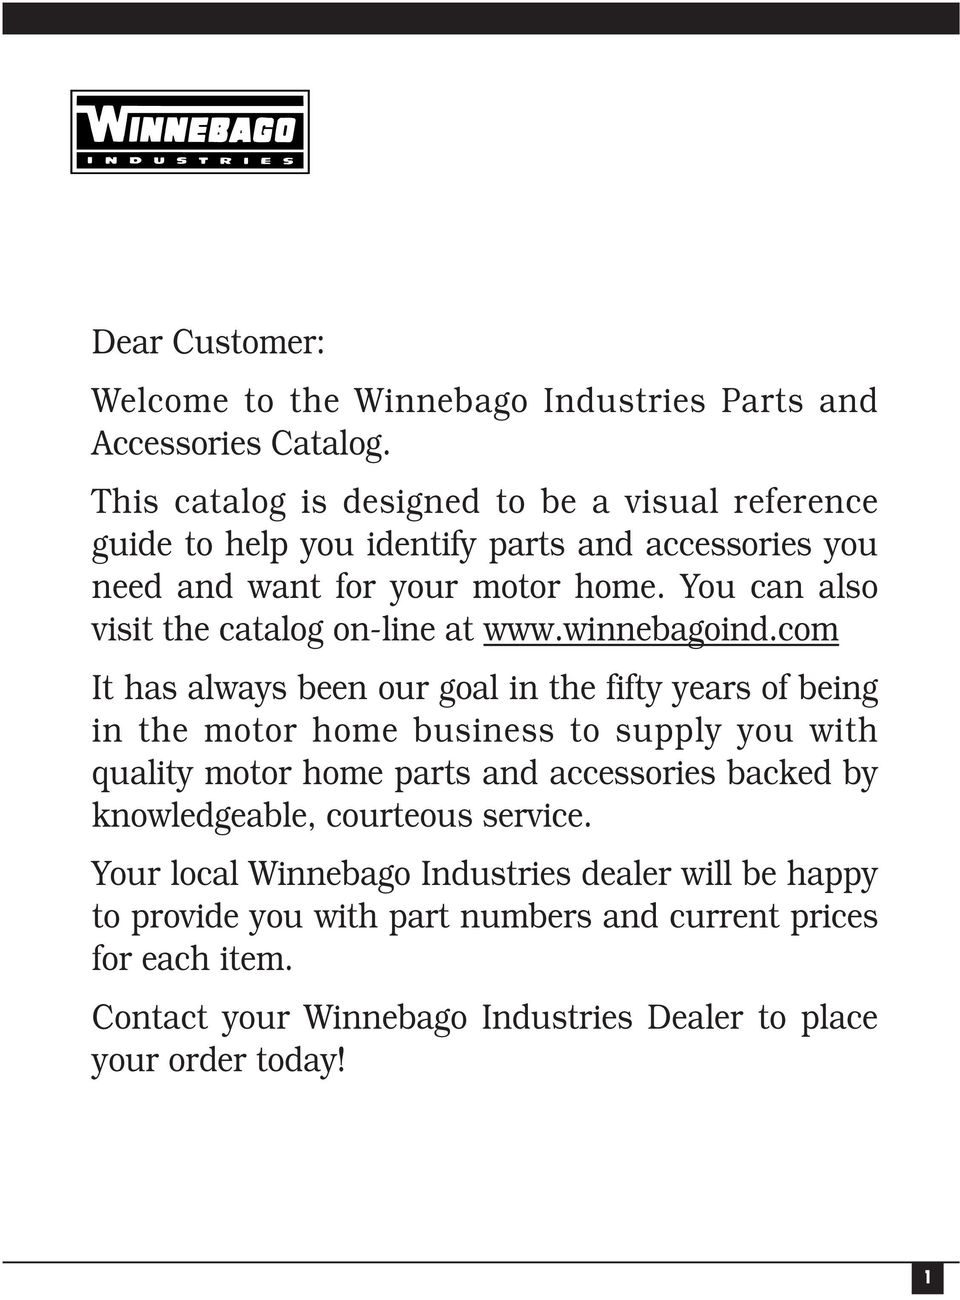 Dear Customer: Welcome to the Winnebago Industries Parts and